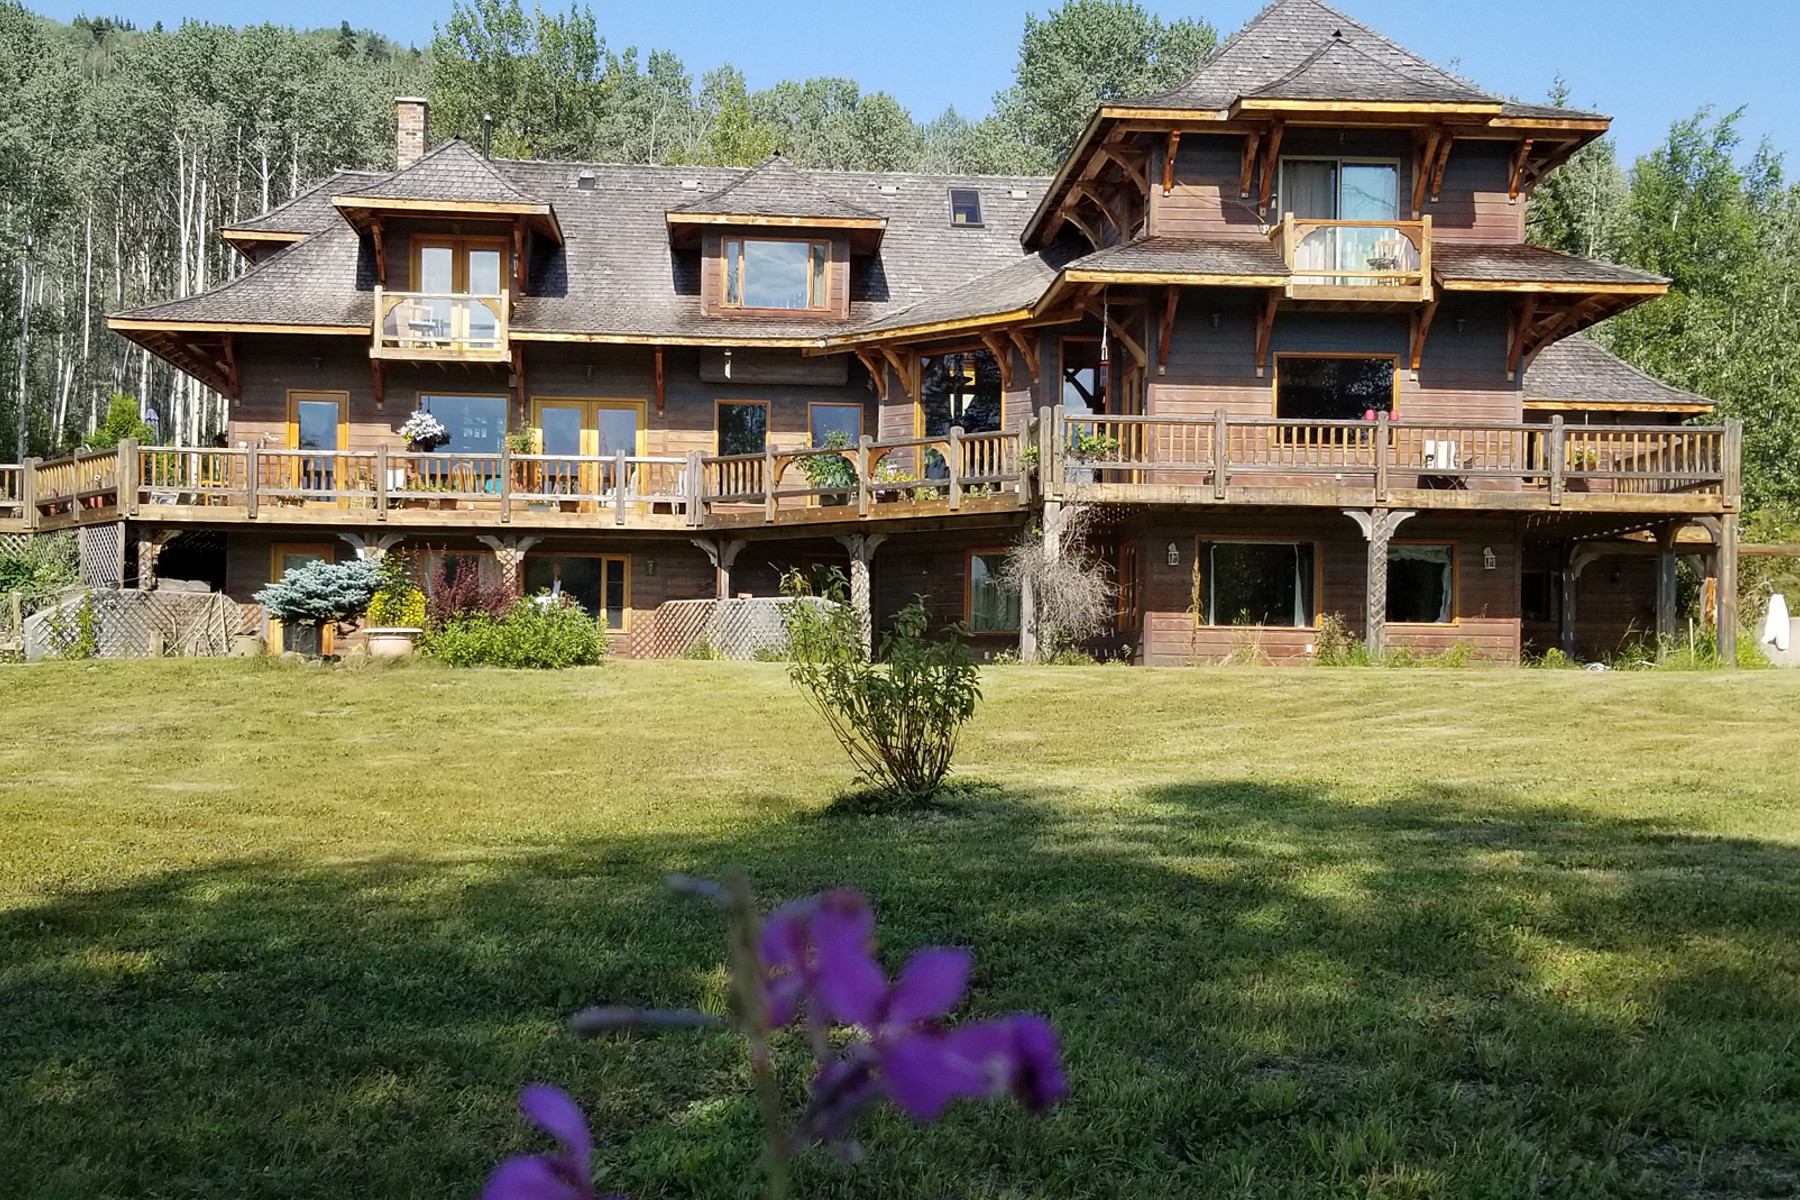 Single Family Homes for Sale at Post and Beam Ranch 22323 Telkwa High Road Smithers, British Columbia V0J 2N7 Canada